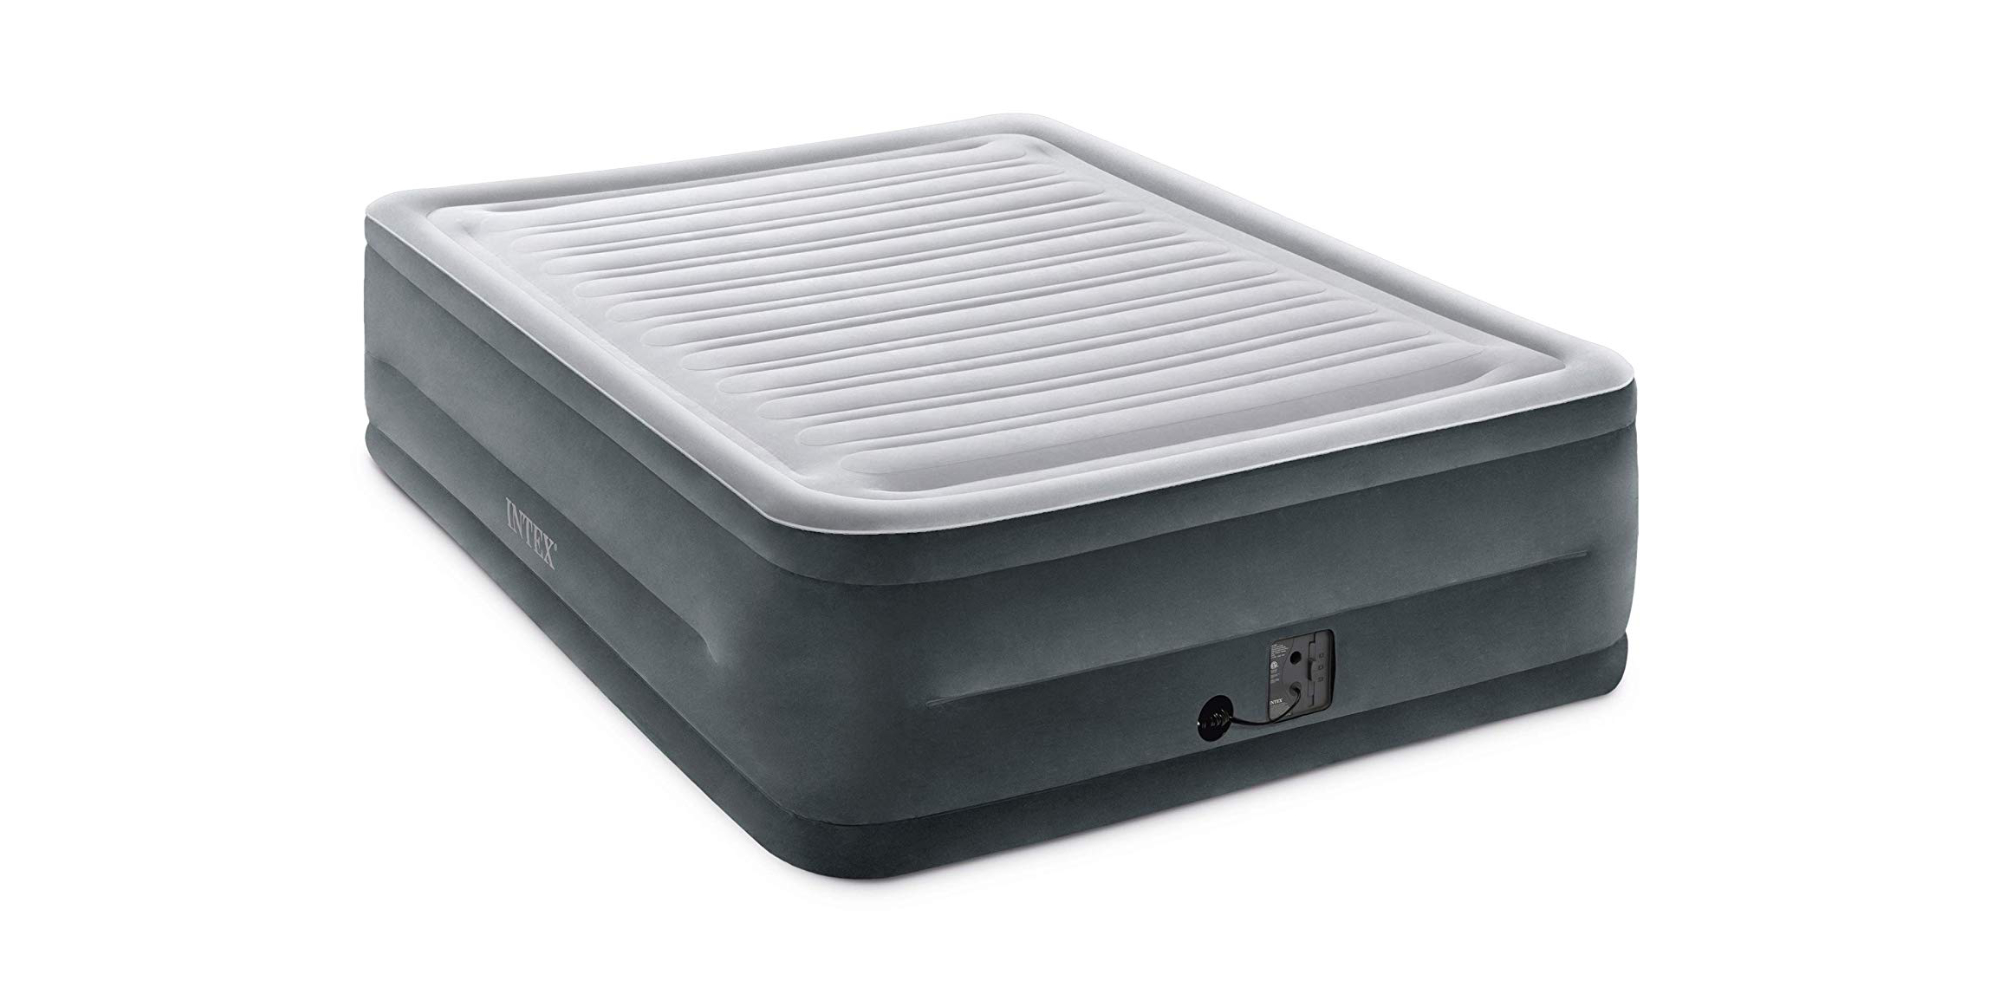 This Intex Queen Airbed features a built-in pump, now $37 at Amazon (Save 25%) - 9to5Toys